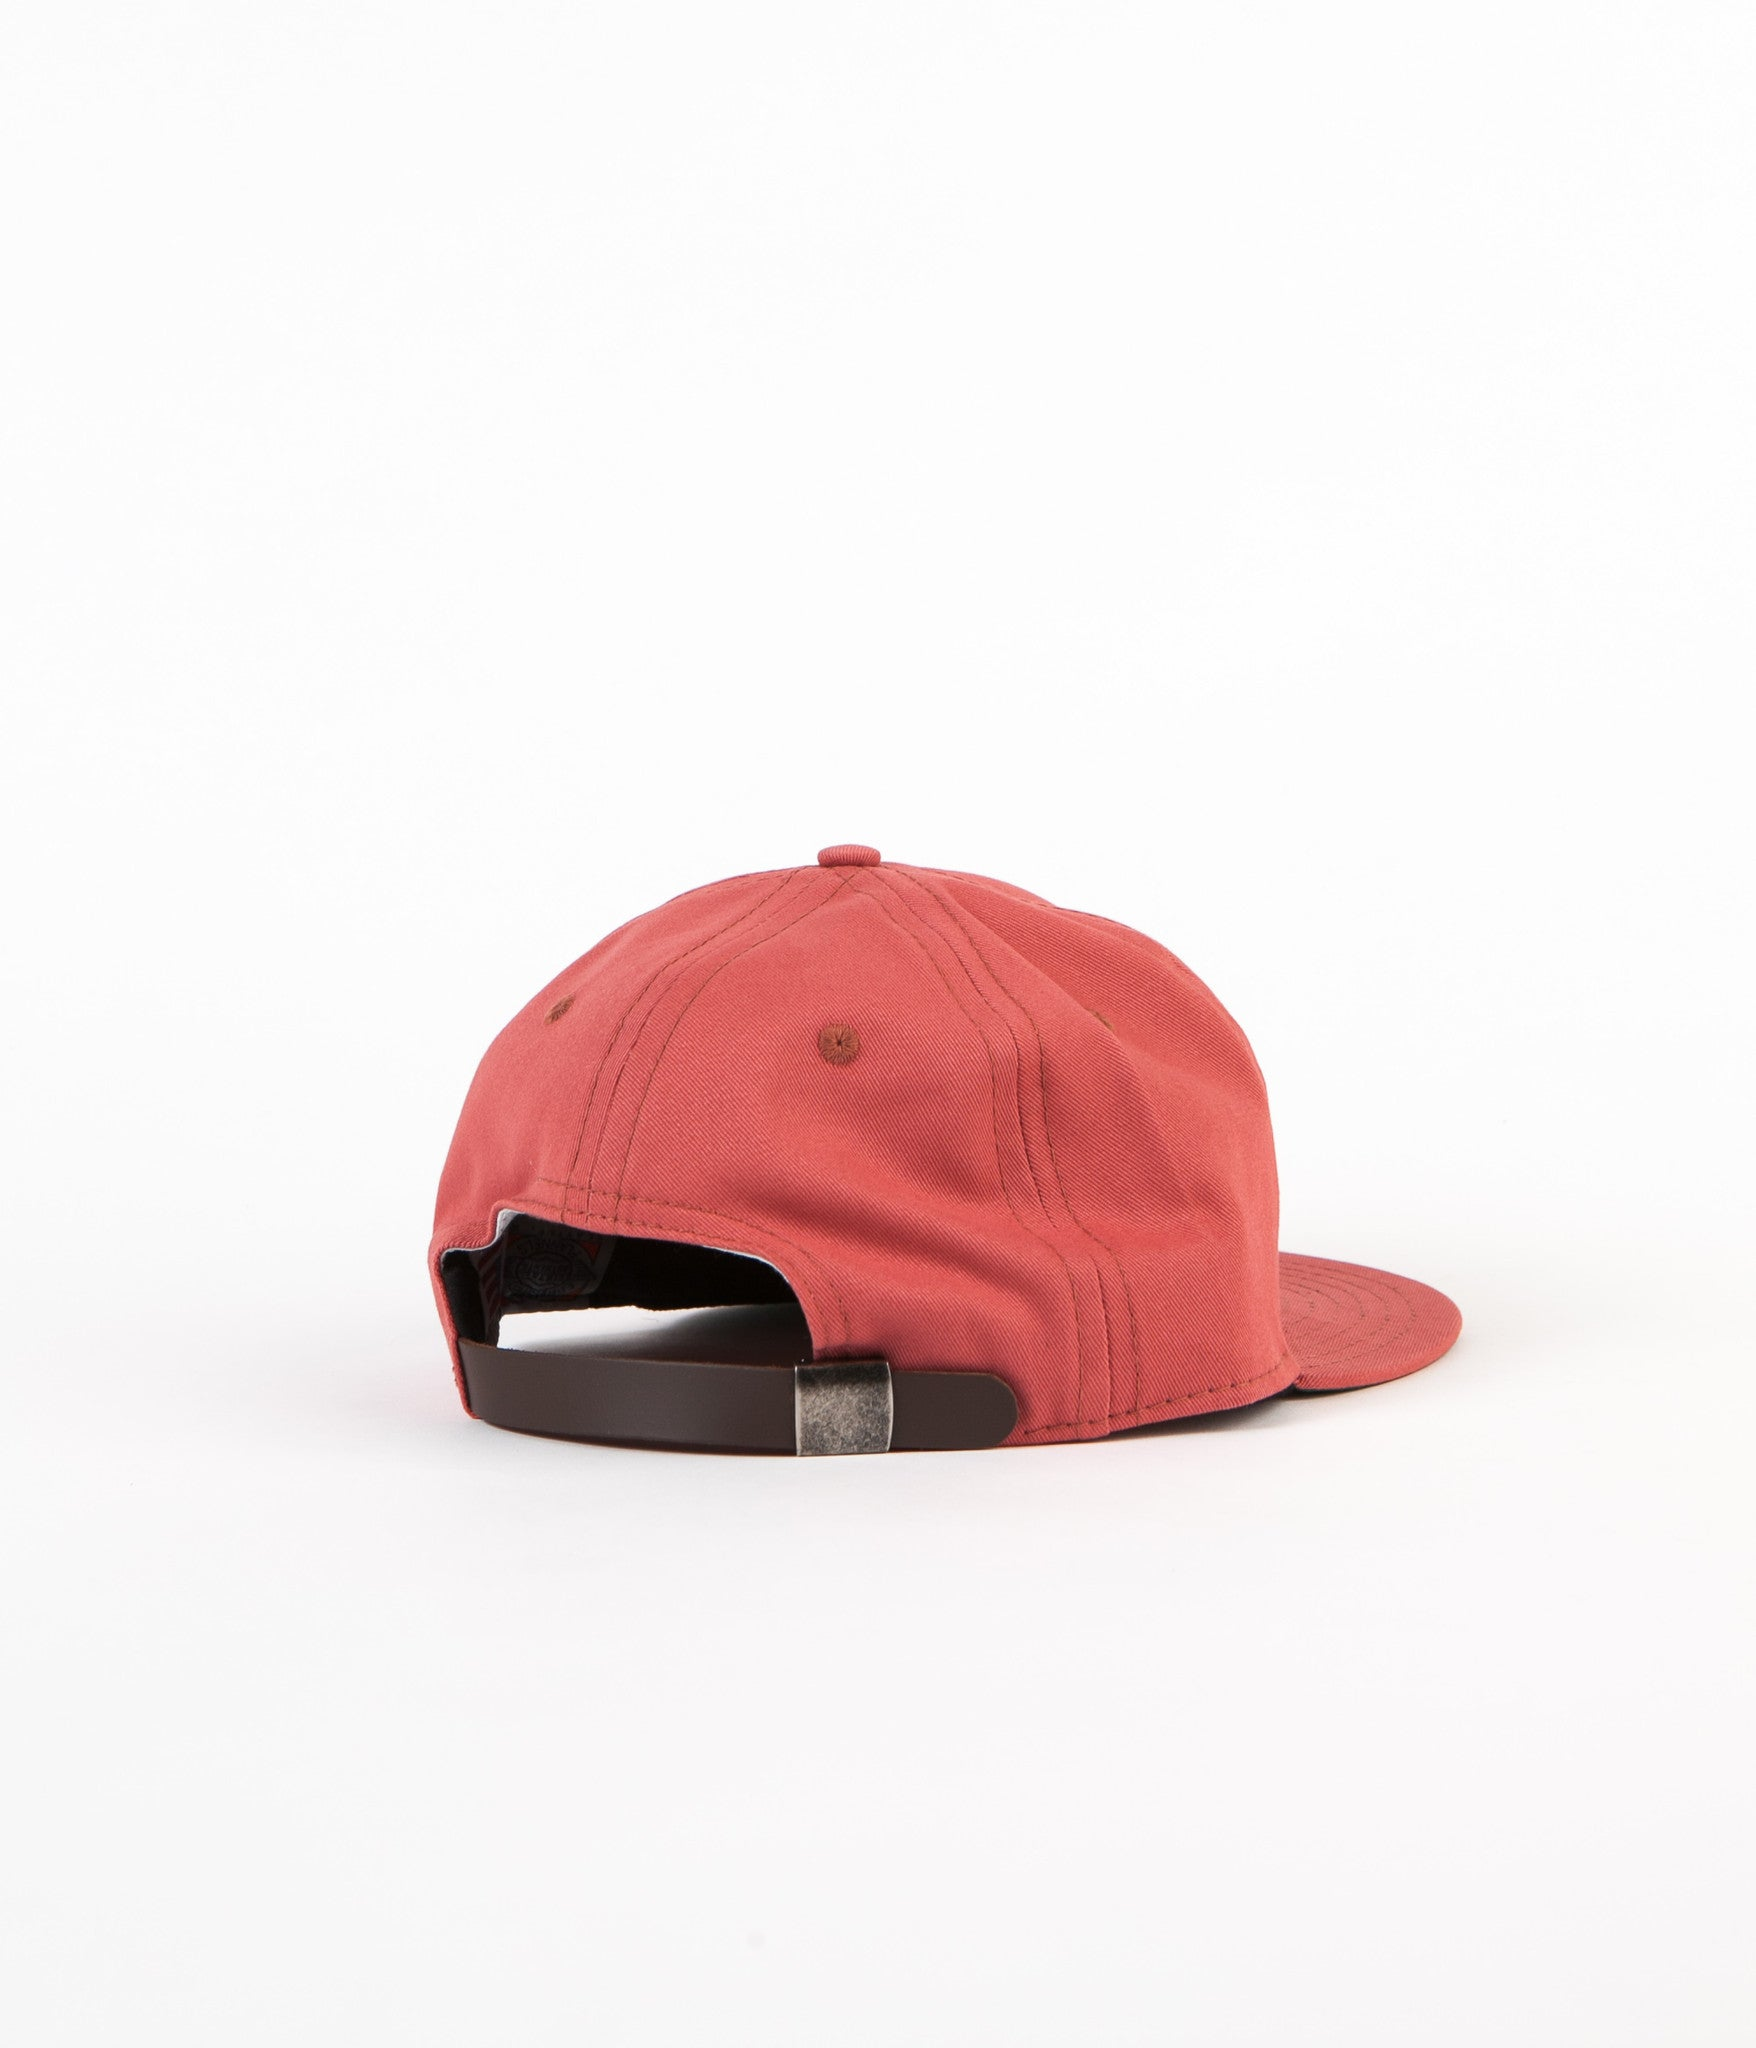 Ebbets Field Flannels Brushed Chino Twill 6 Panel Cap - Nautical Red